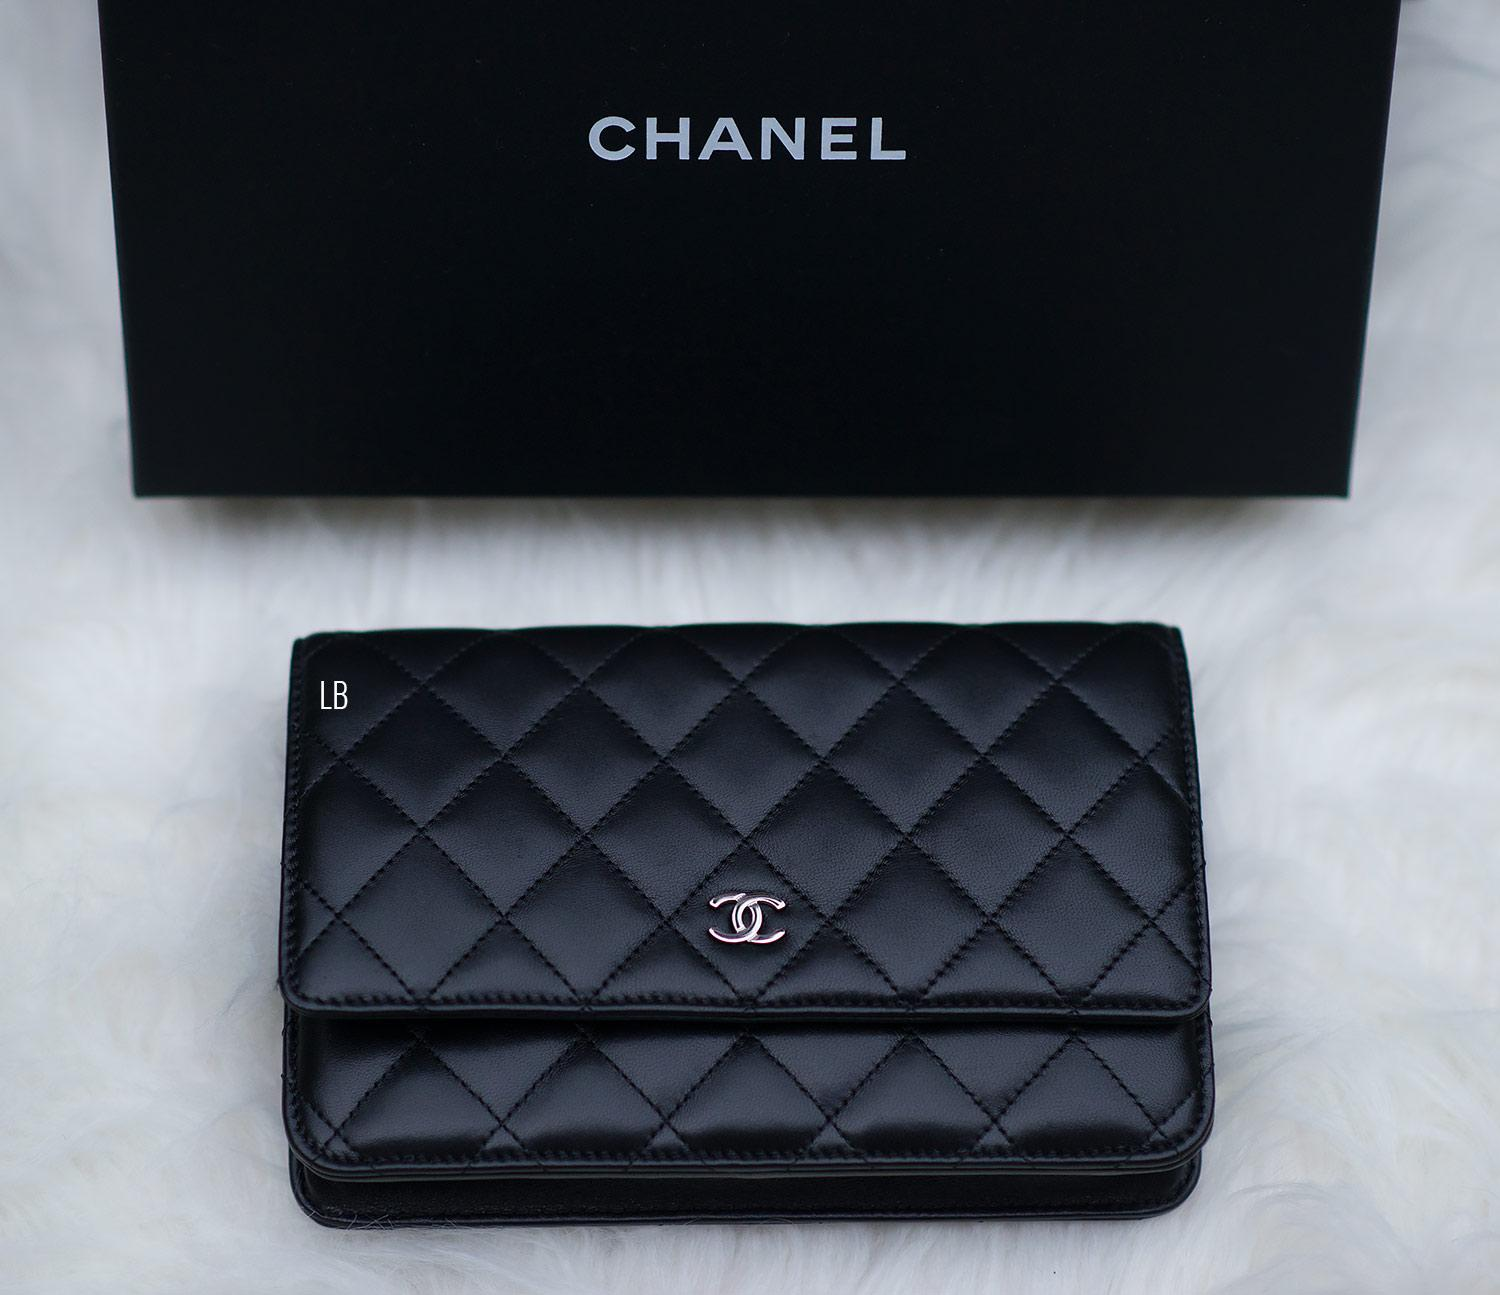 63781500399dd8 My New Chanel Wallet On Chain 'WOC' Bag In Black | Raindrops of Sapphire